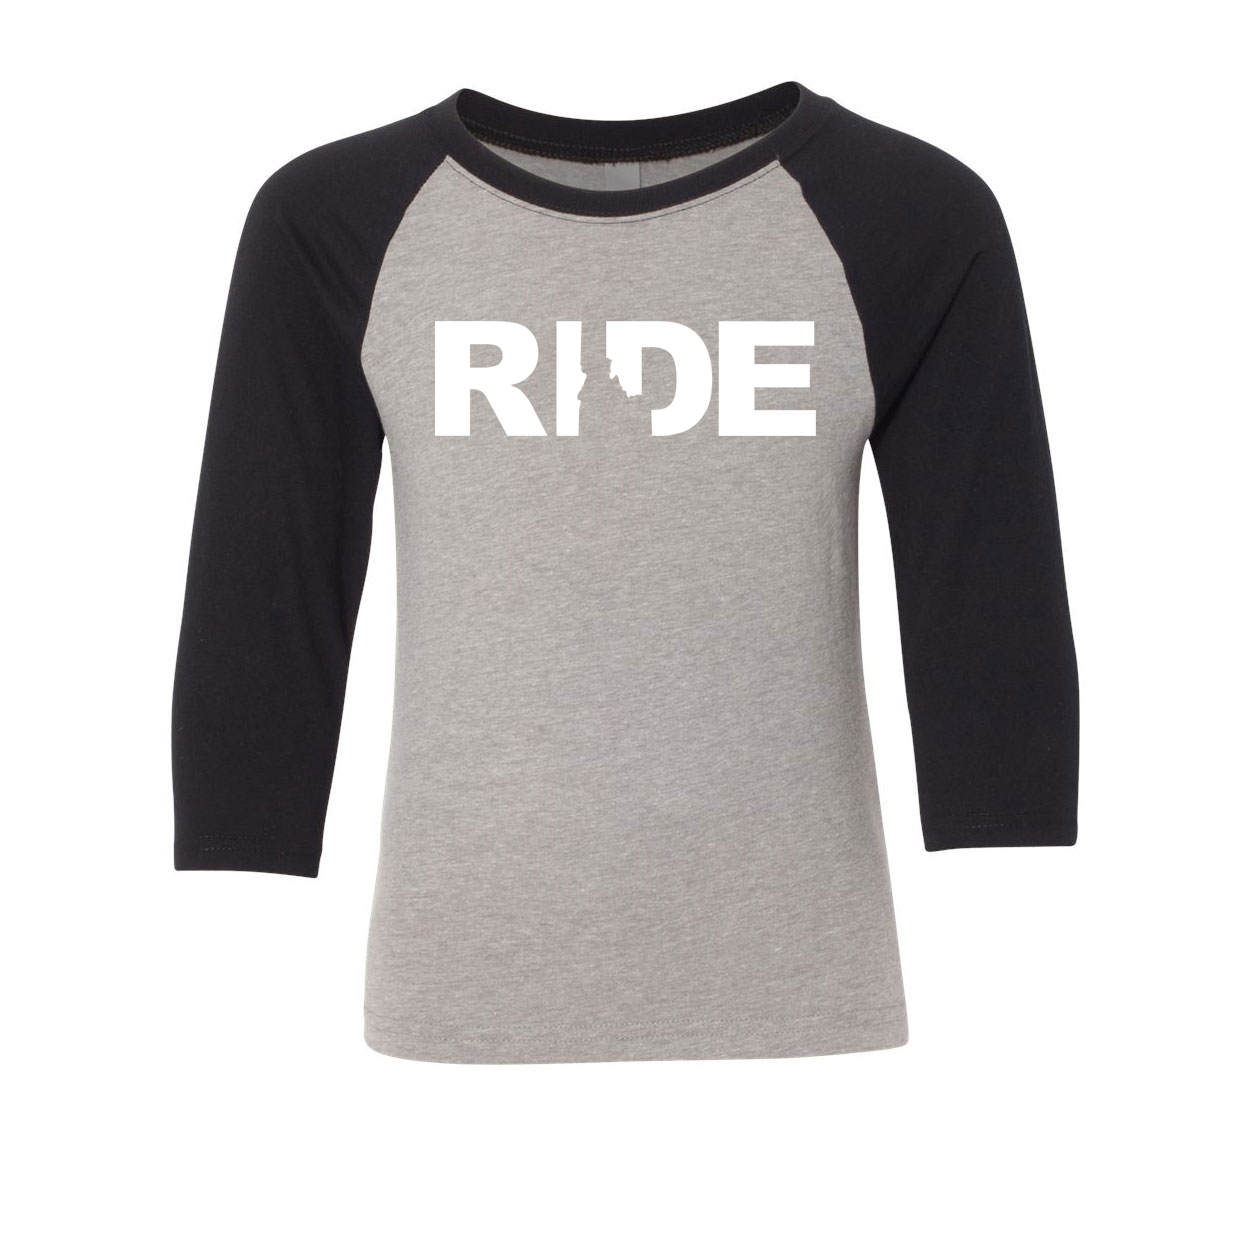 Ride Idaho Classic Youth Premium Raglan Shirt Gray/Black (White Logo)